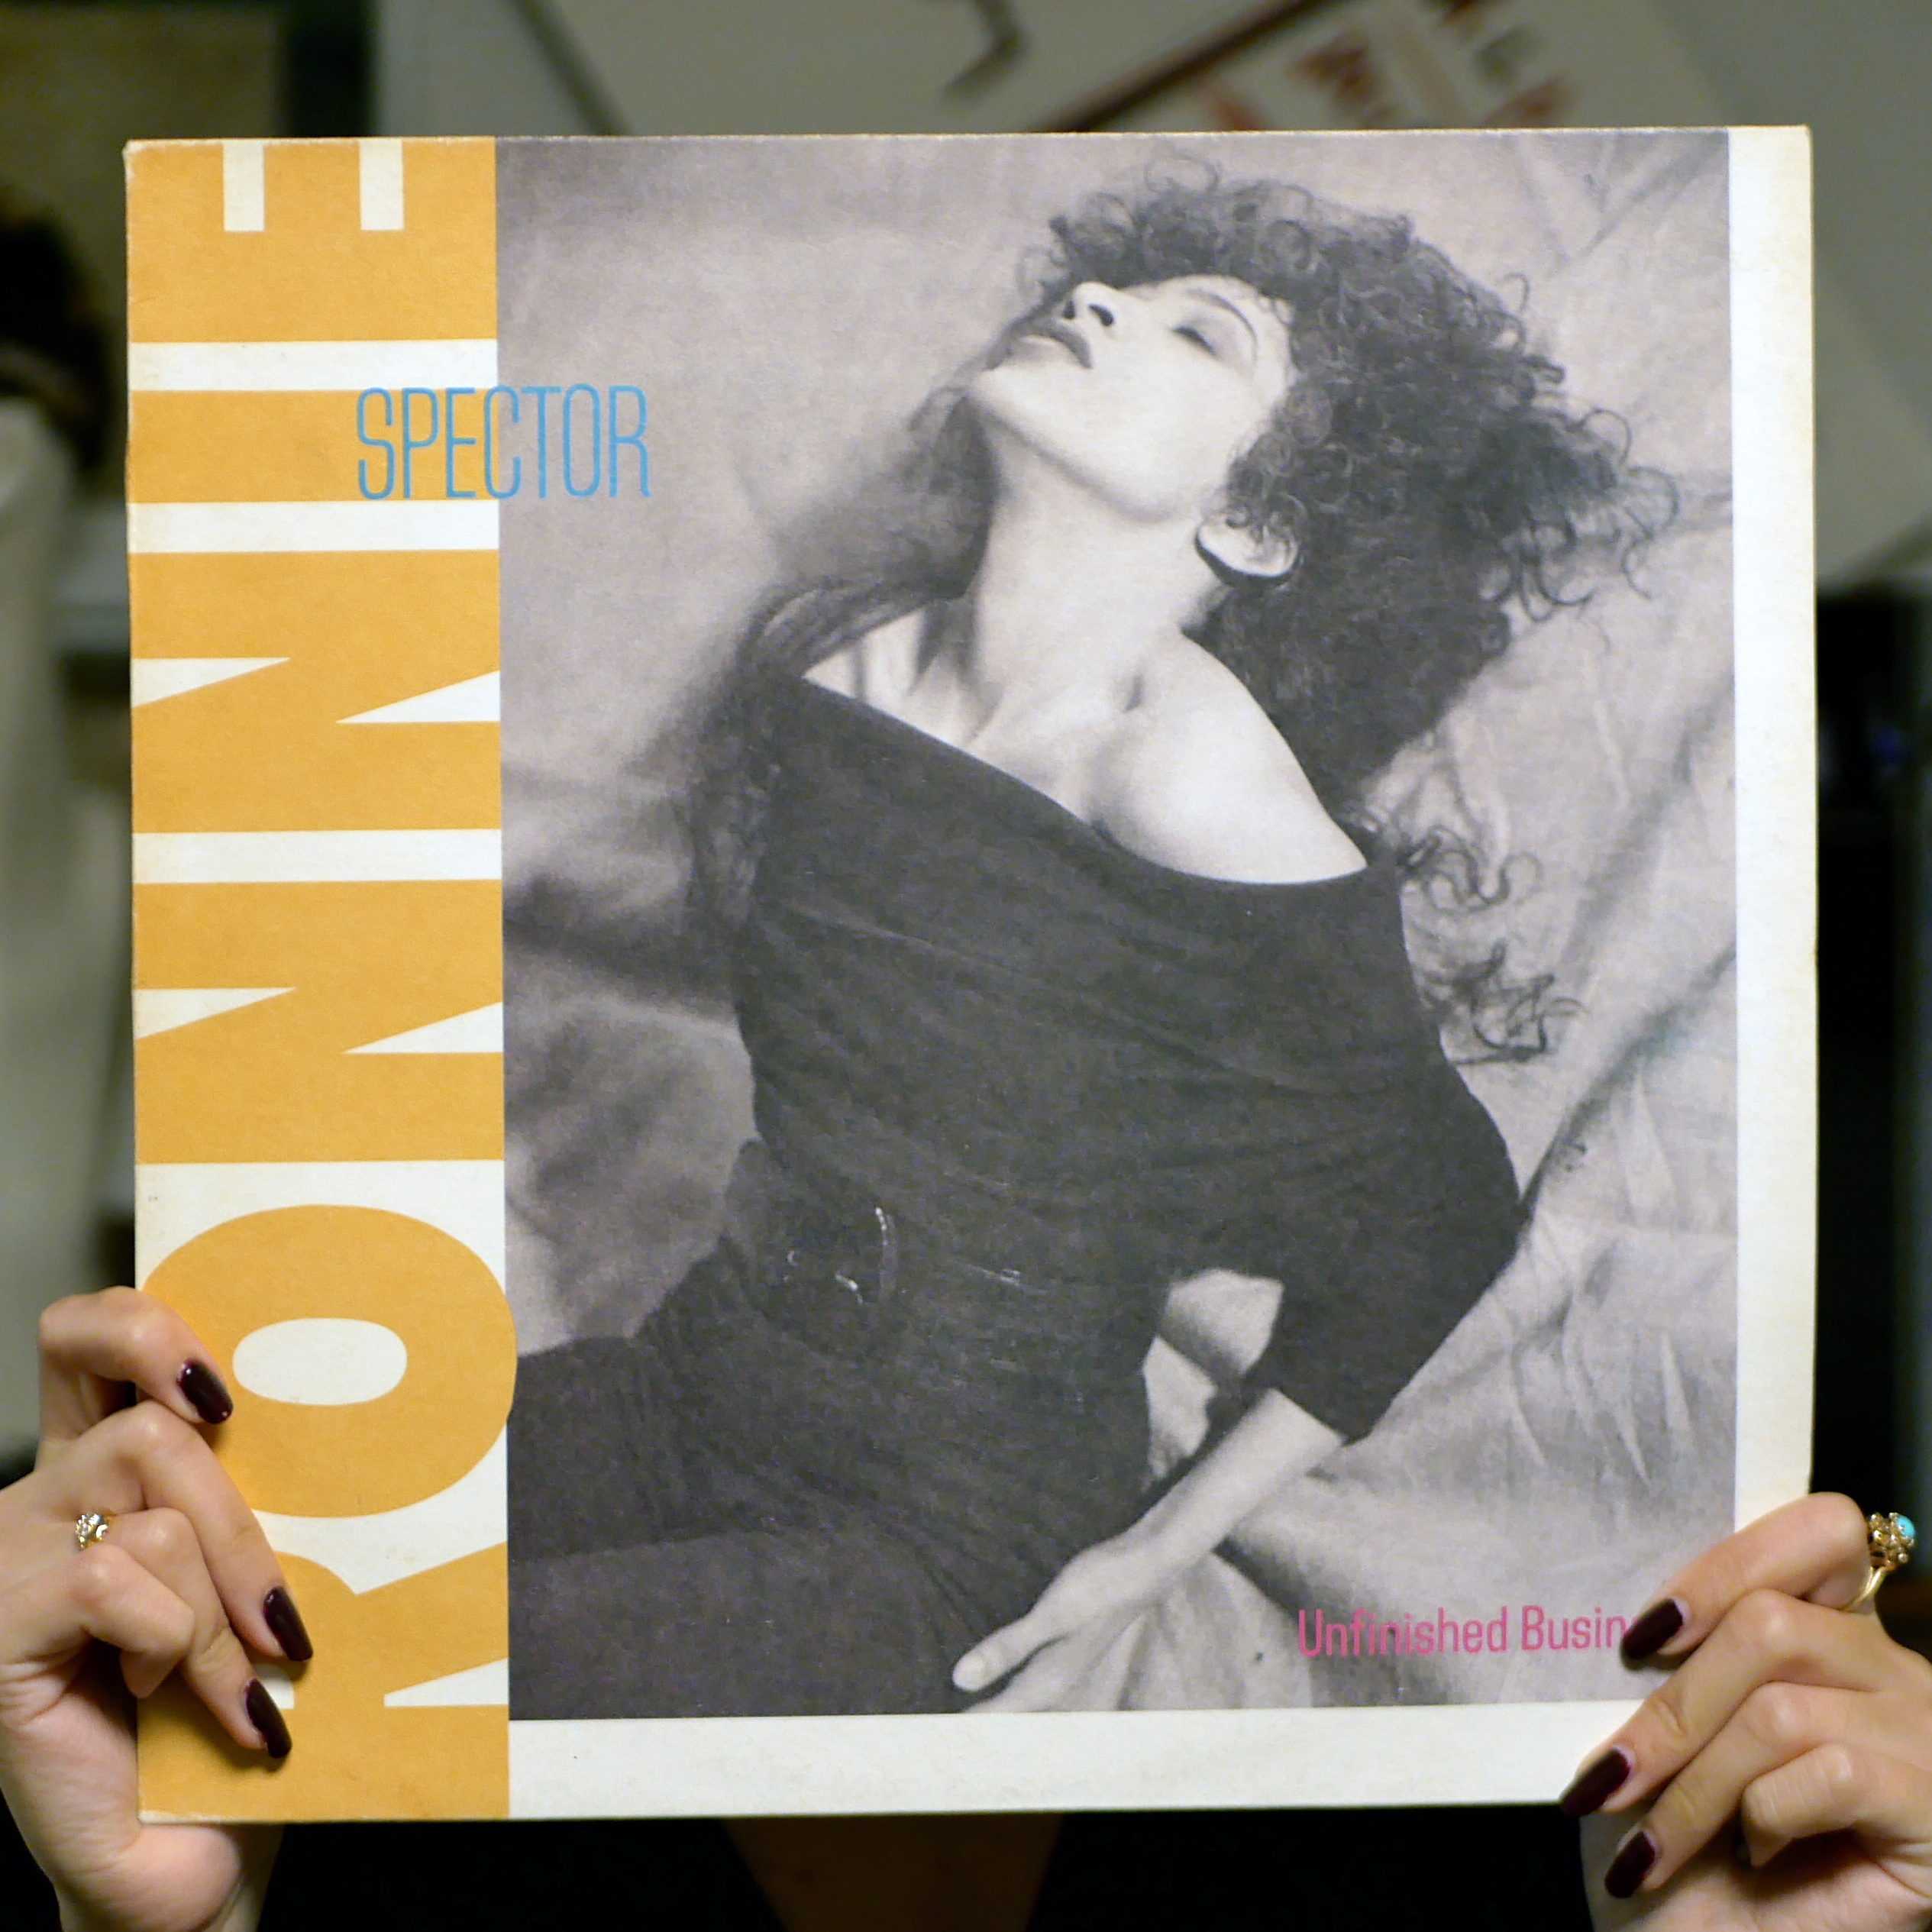 Ronnie Spector – Unfinished Business [LP, 1987]